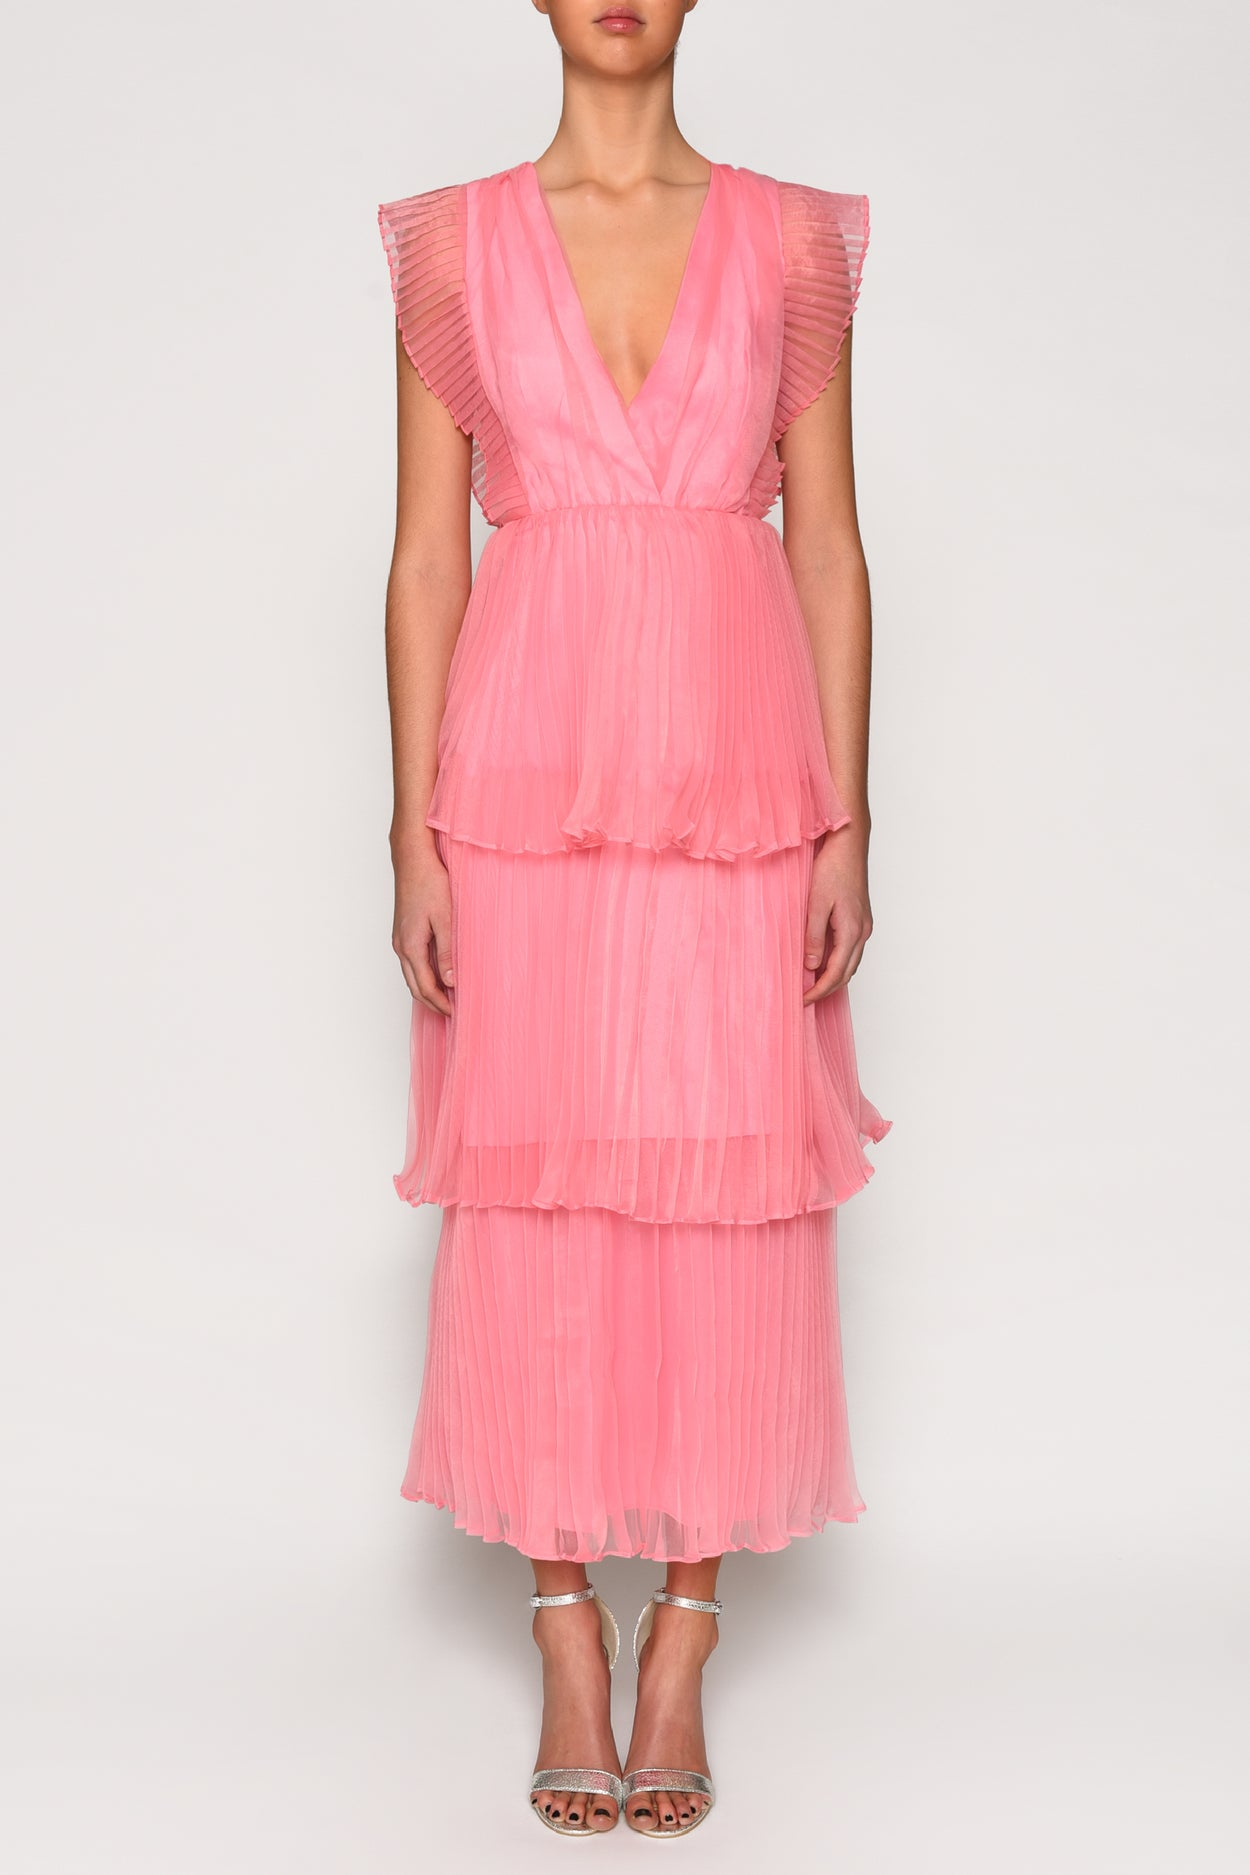 True Decadence Pink Organza Pleated Tiered Midaxi Dress